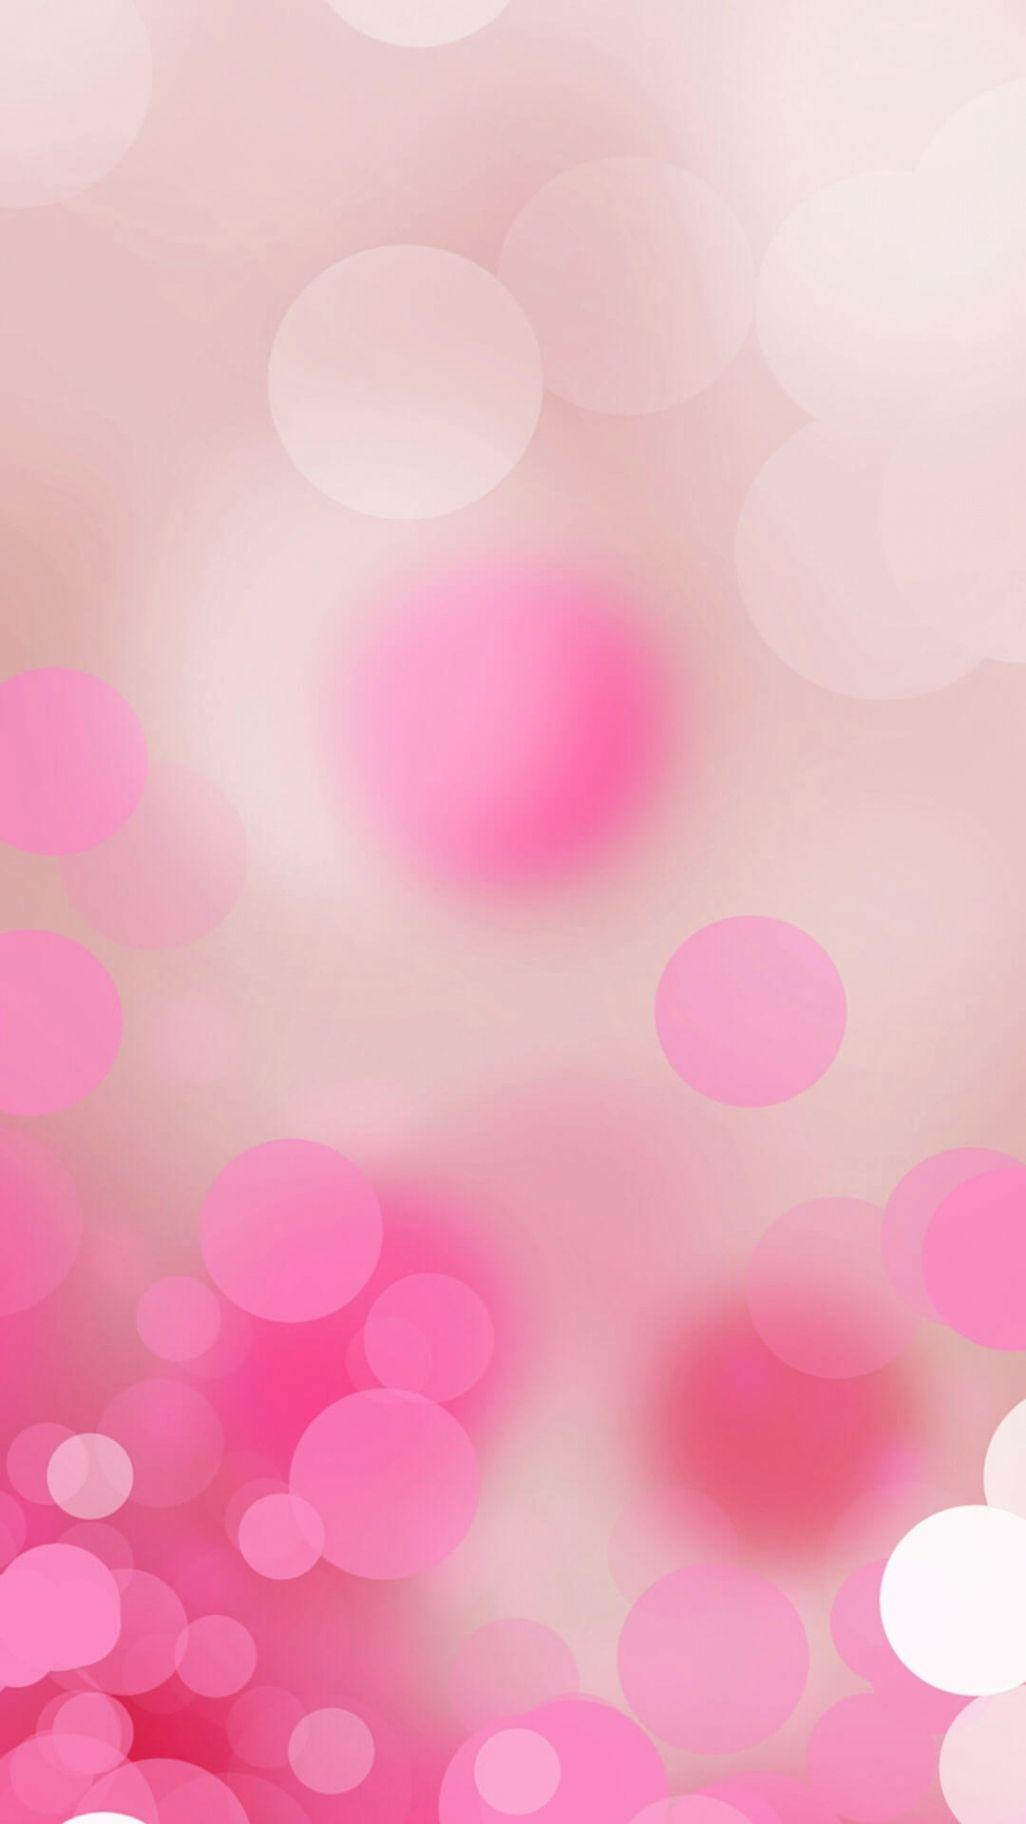 Iphone Wallpapers Tumblr Pink Wallpaper Cave